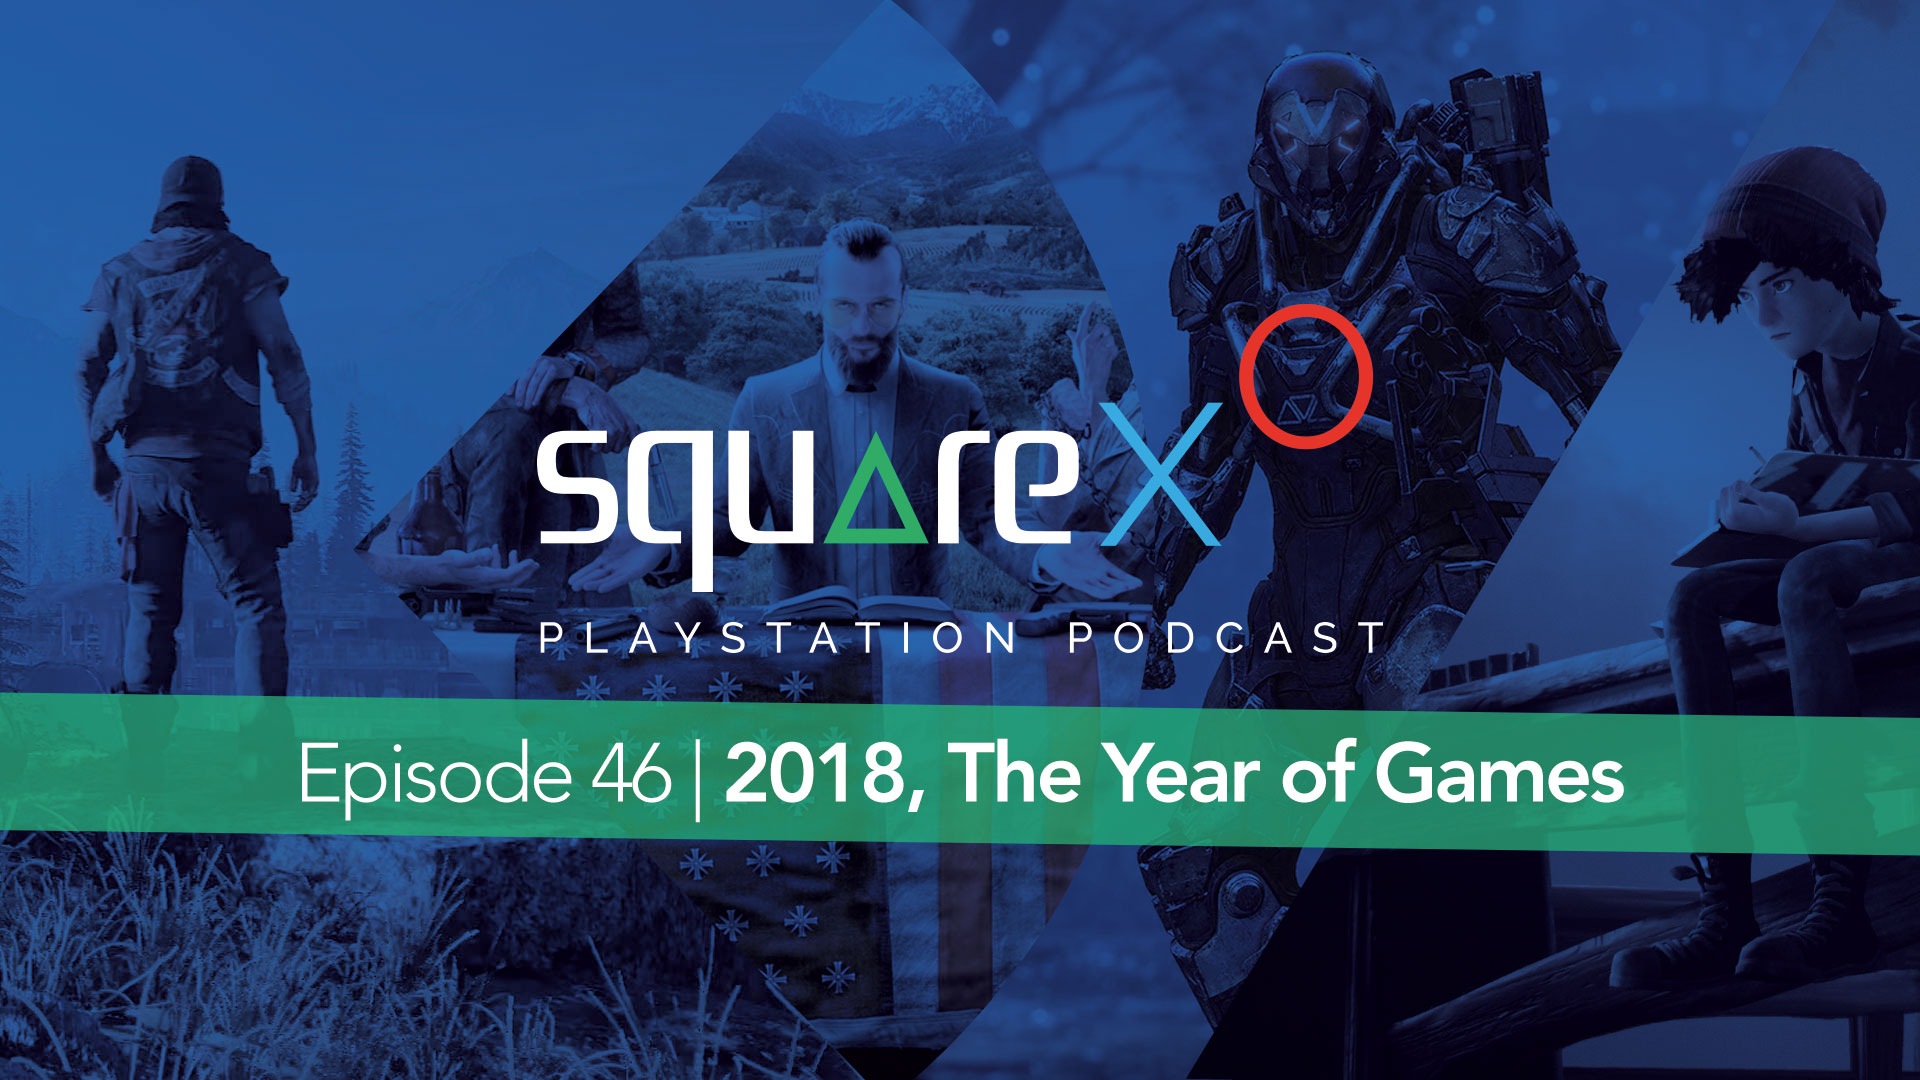 Episode 46 | 2018, The Year of Games